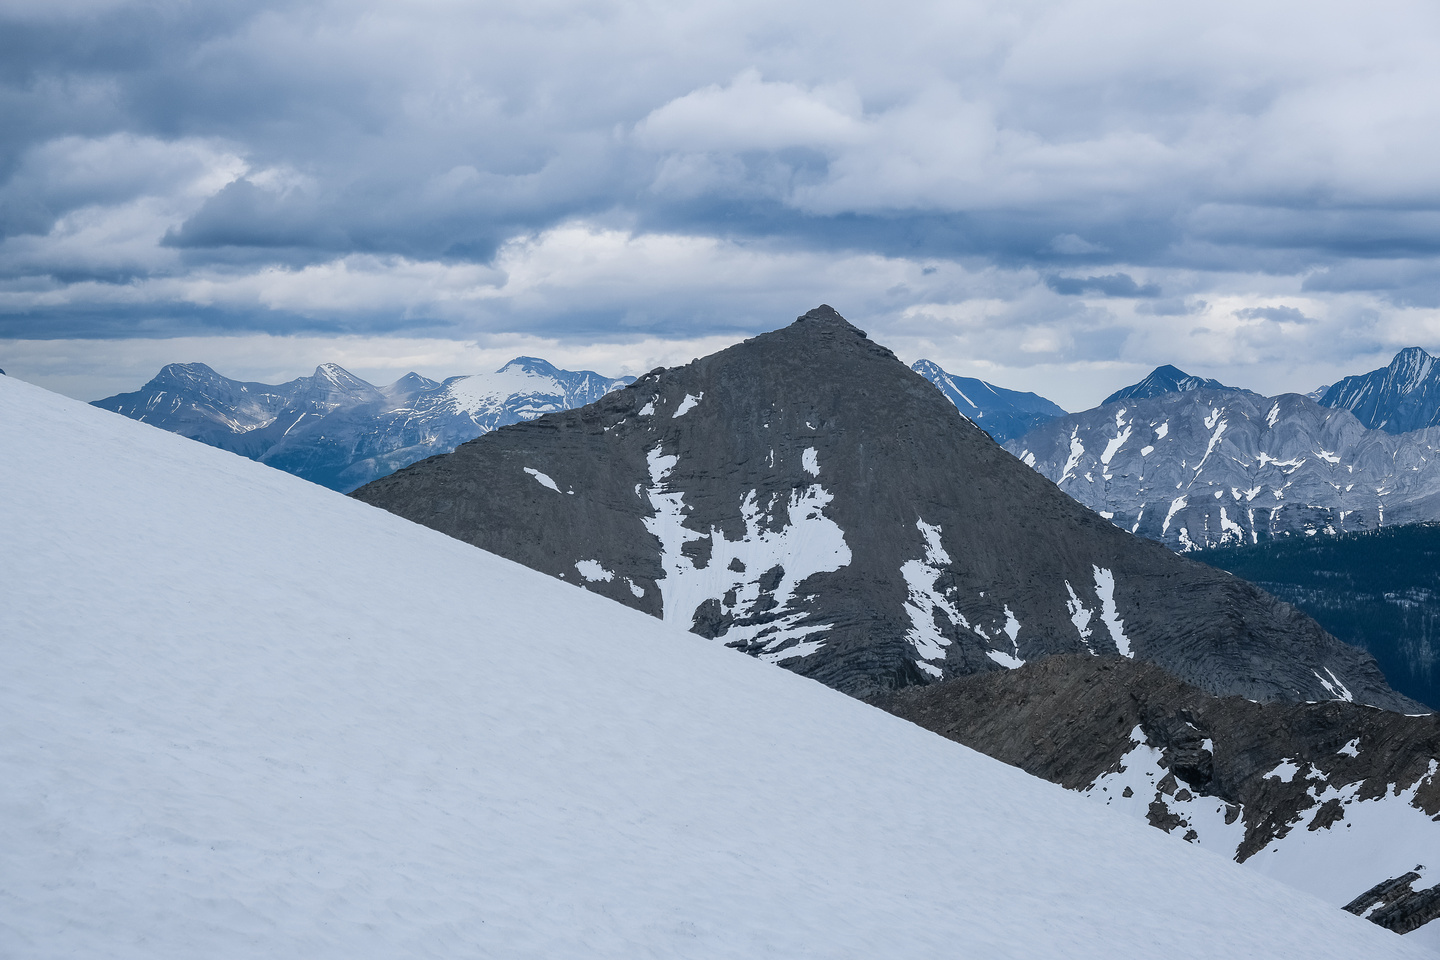 Mount Currie has a distinct pyramid shape.